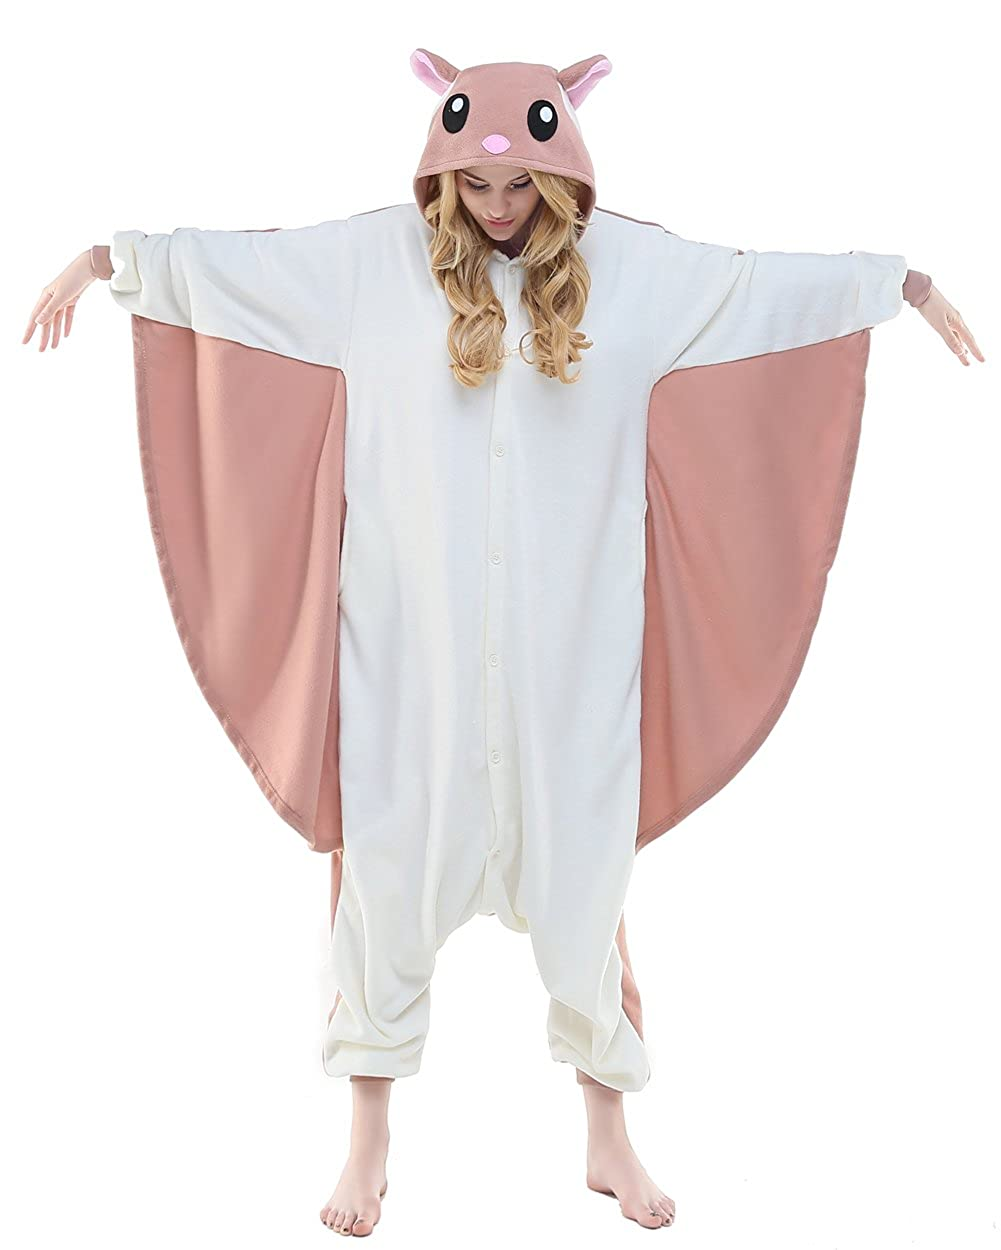 Canasour Unisex Aduit flying Squirrel Pajamas- Plush One Piece Costume